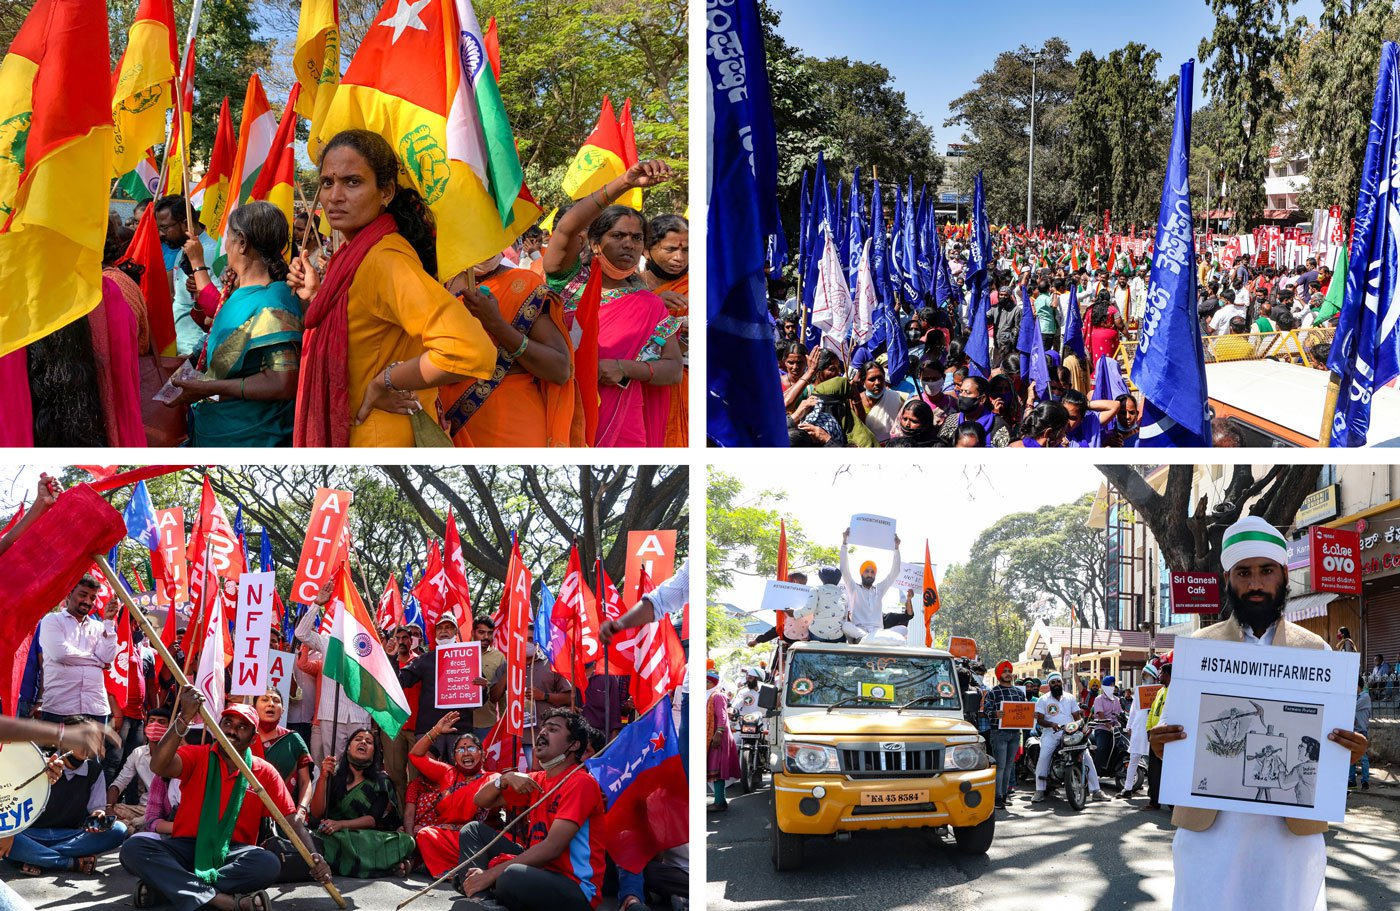 About 30 organisations are said to have participated in the Republic Day farmers' rally in Bengaluru. Students and workers were there too